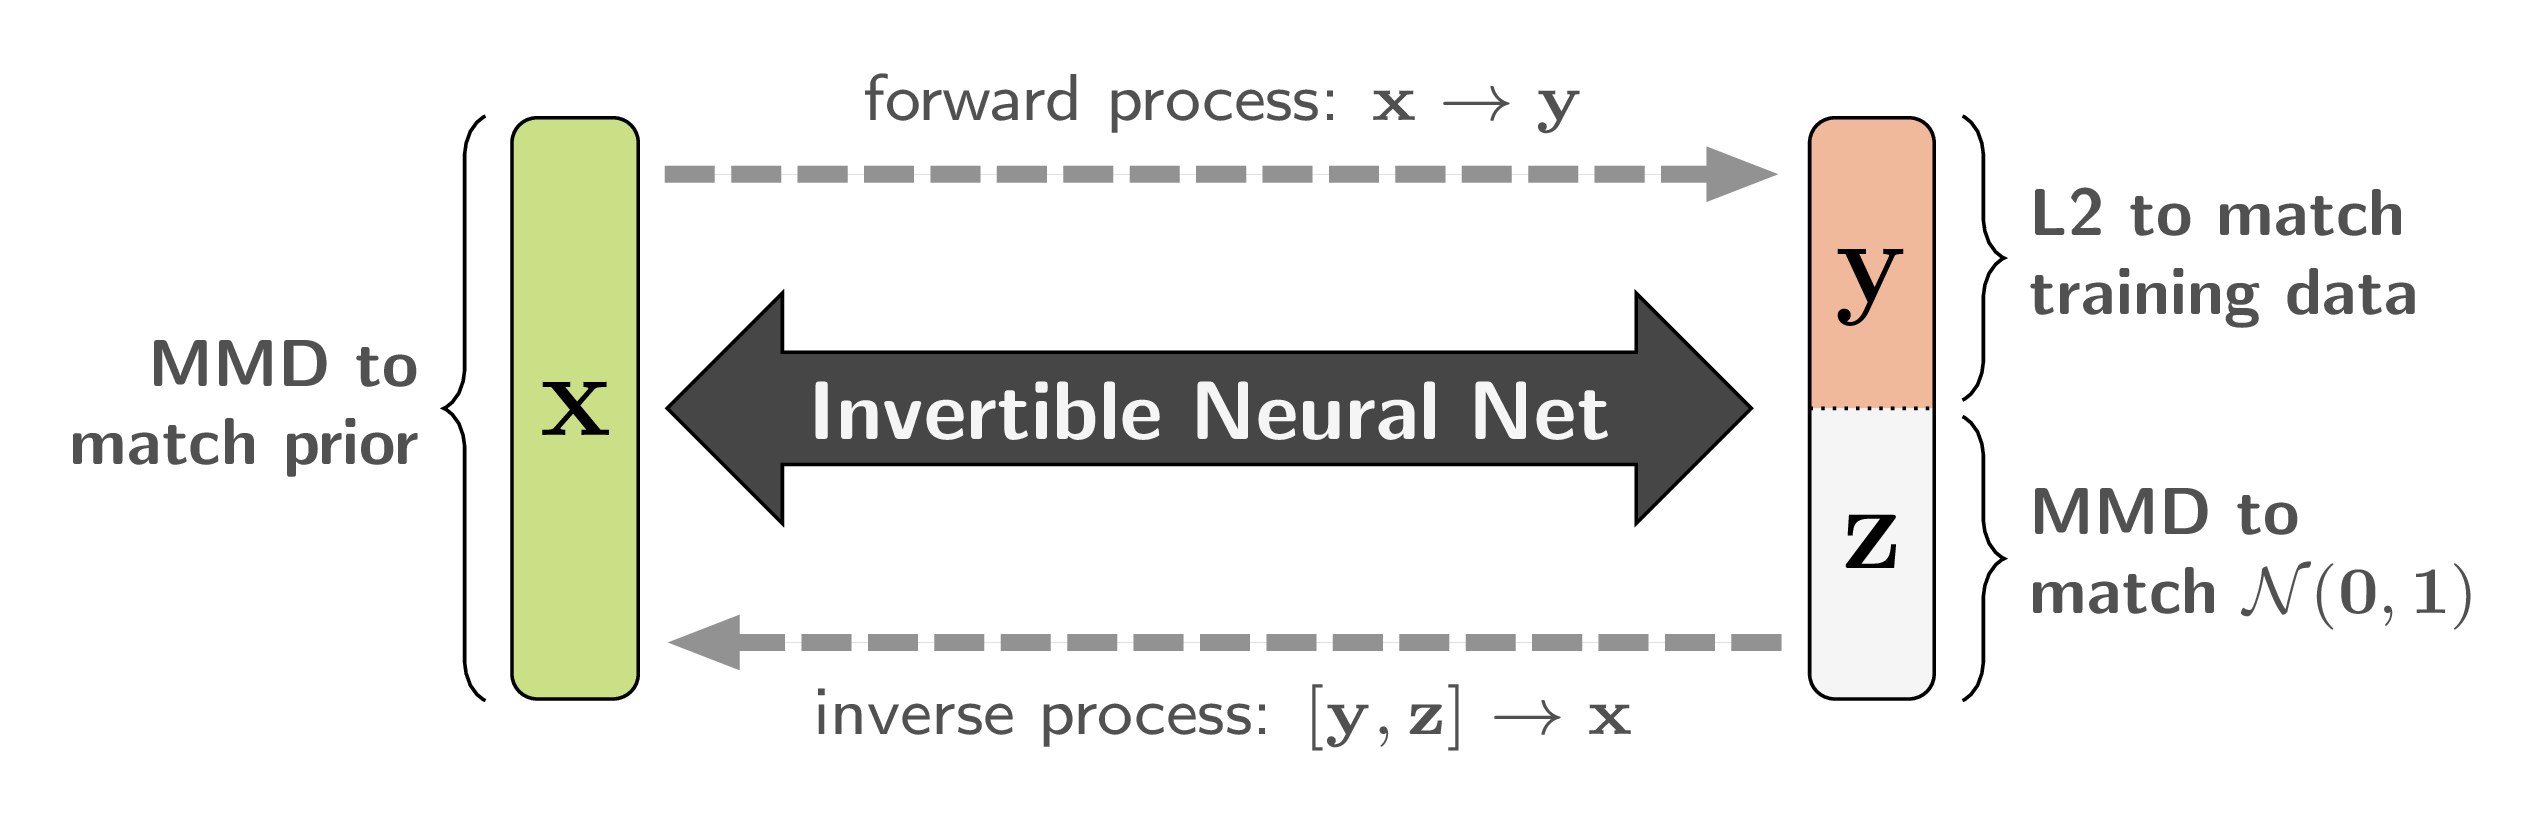 Loss functions used in training our Invertible Neural Networks